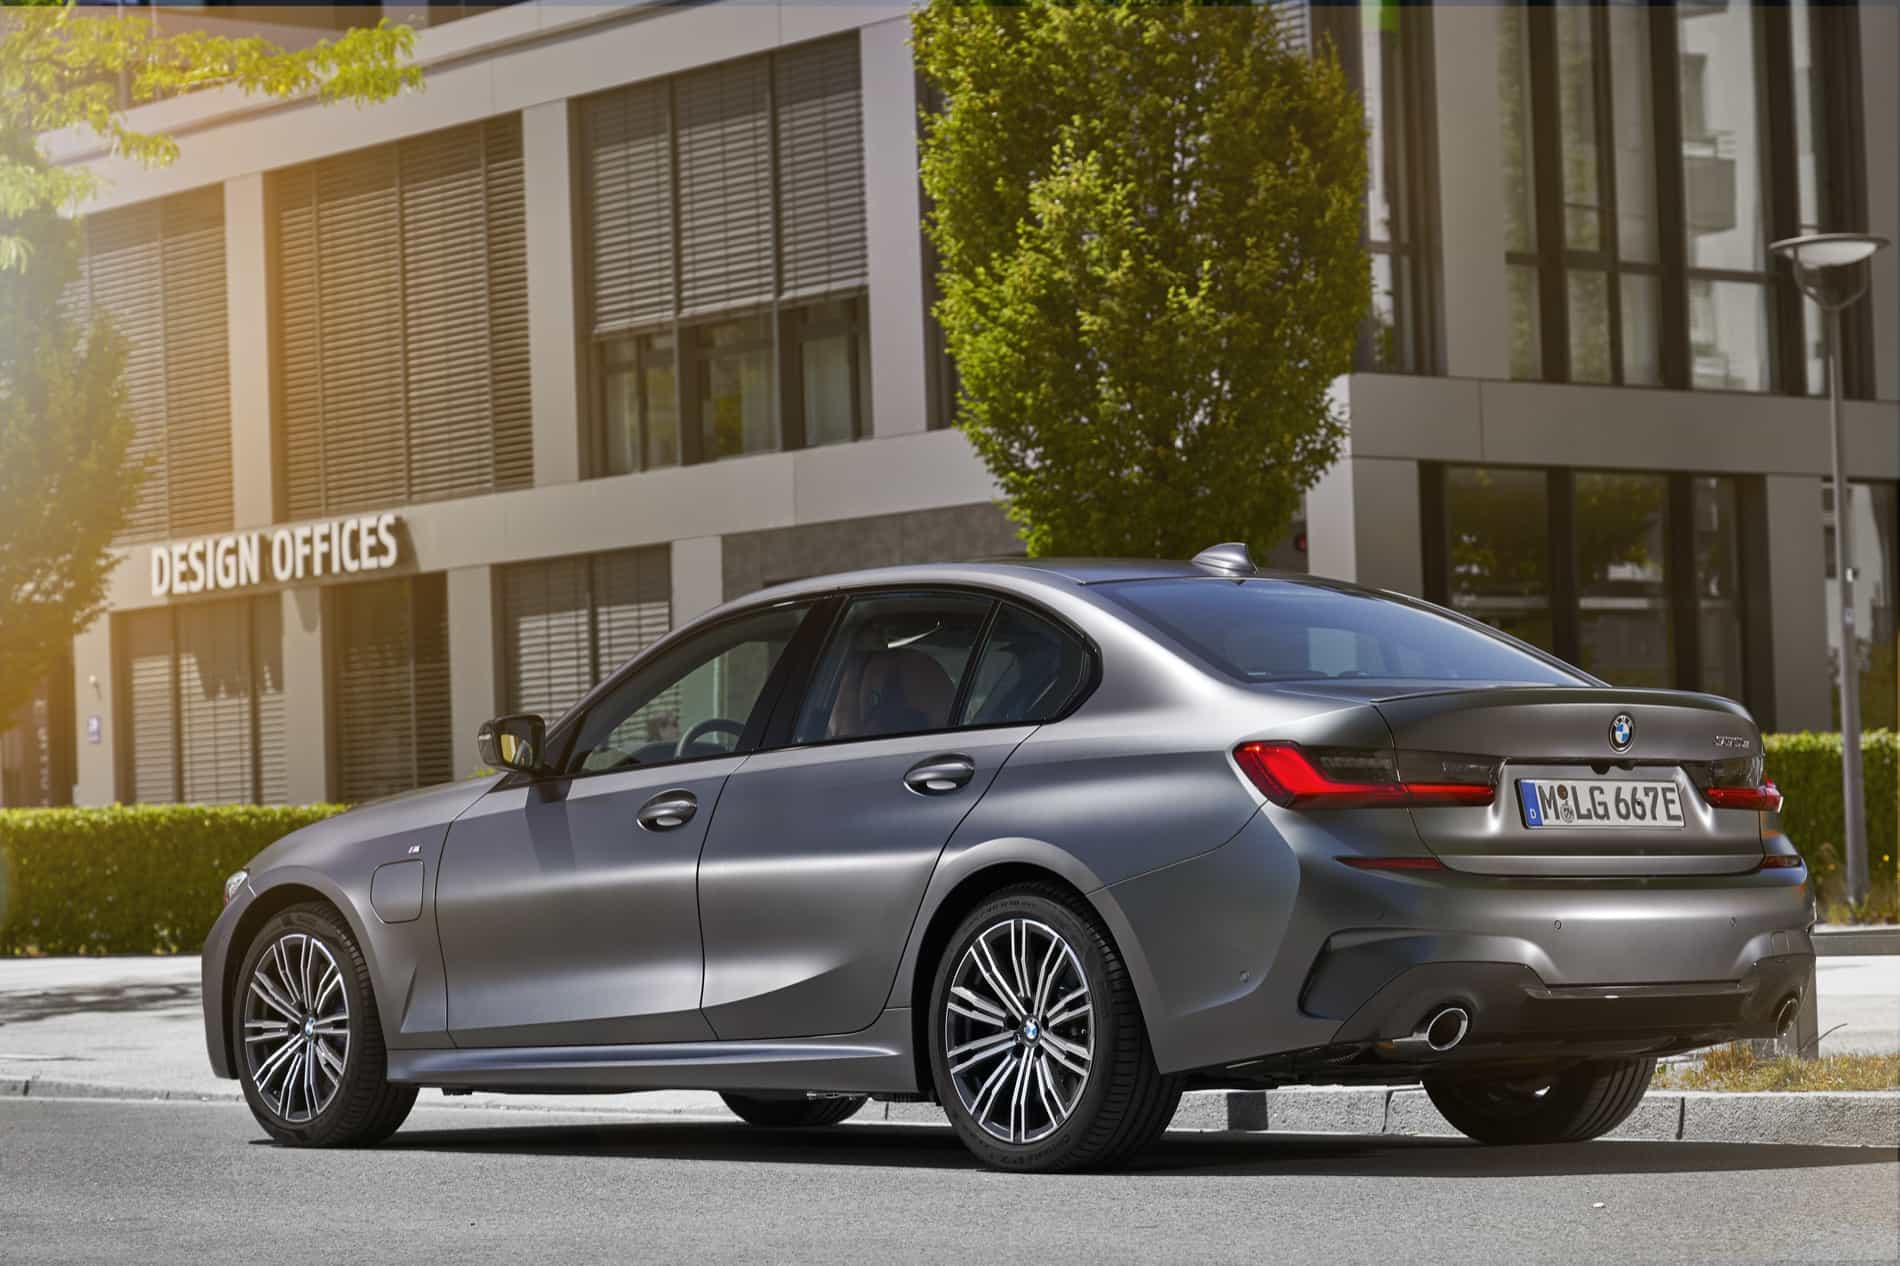 BMW_3_Series_Plug-in_Hybrid-019